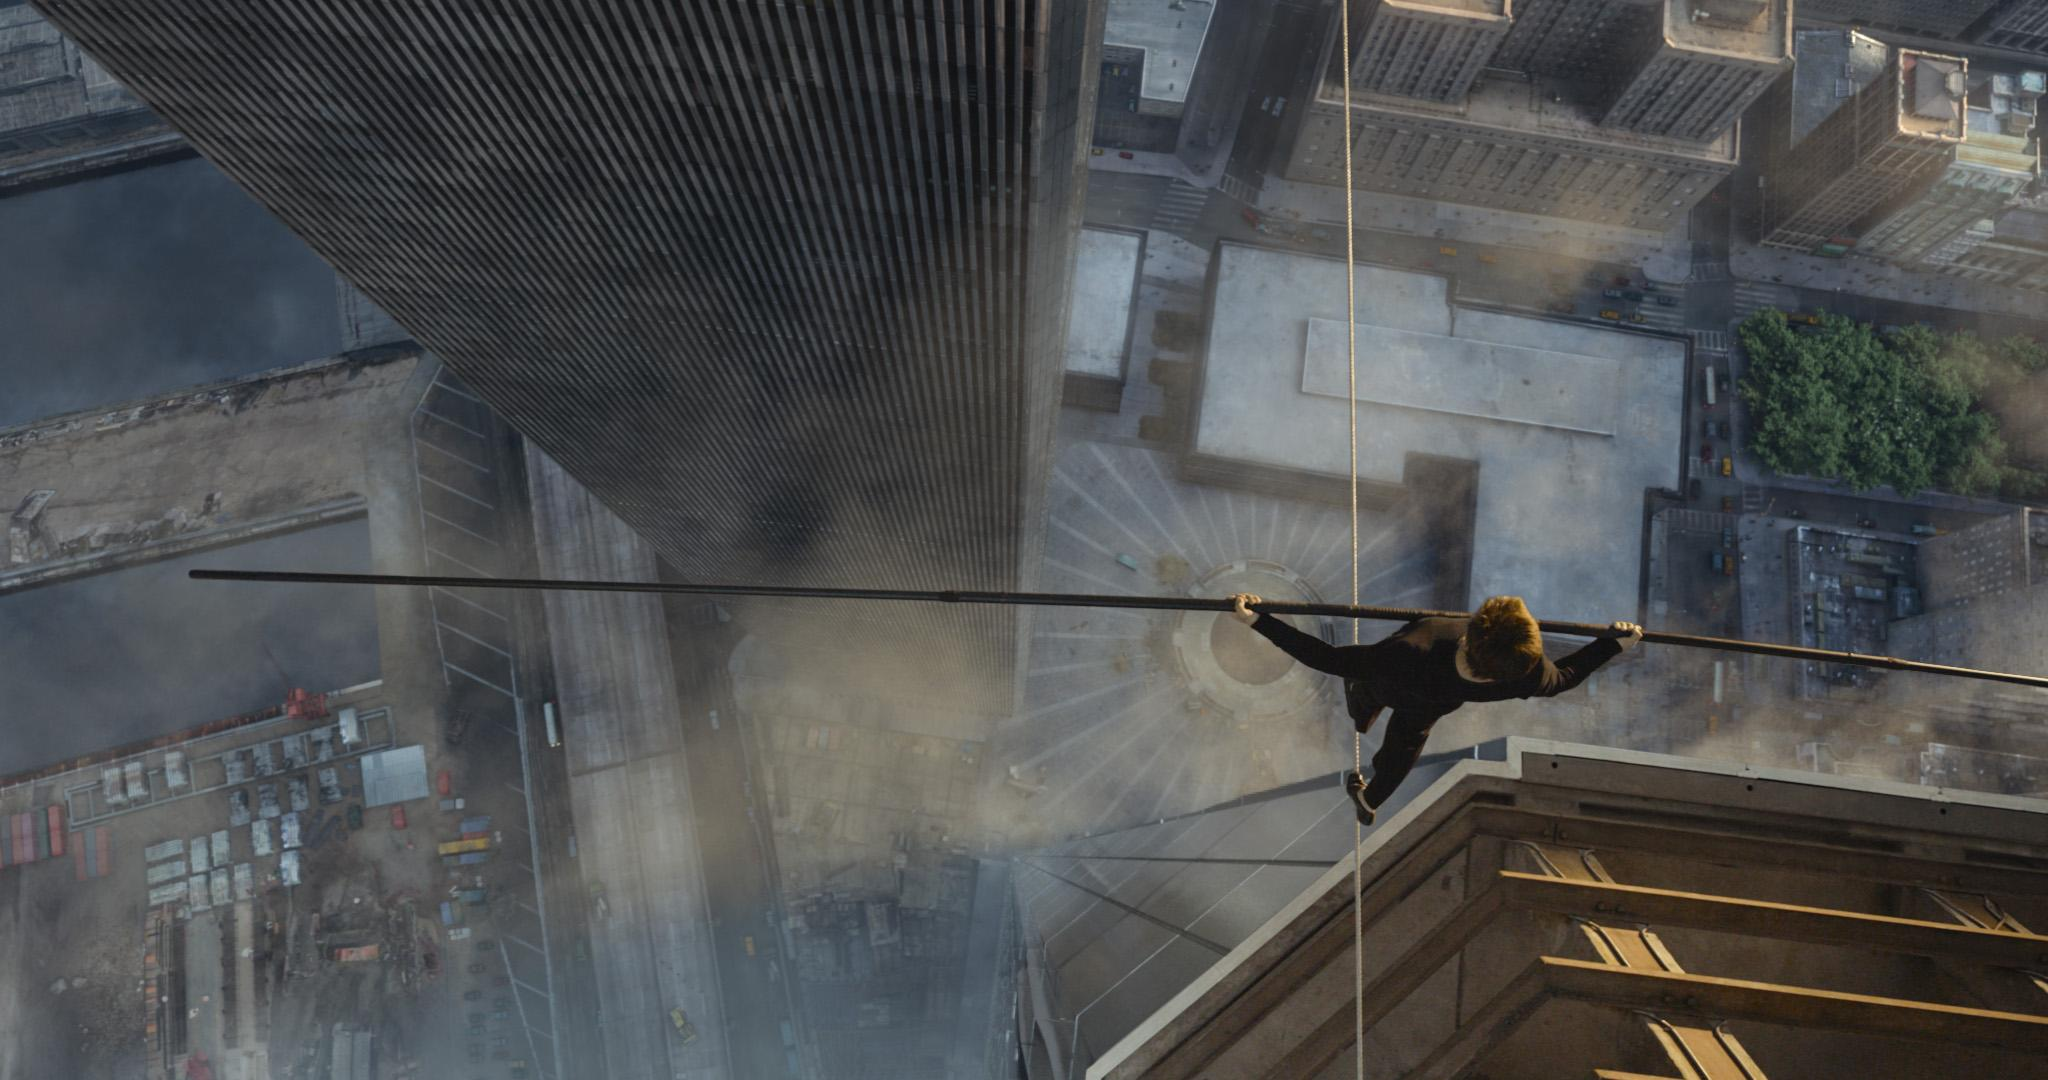 RT @SonyPicturesUK: Every dream begins with a single step. Don't miss #TheWalkMovie special on @skymovies Showcase now! http://t.co/KH6xFkN…